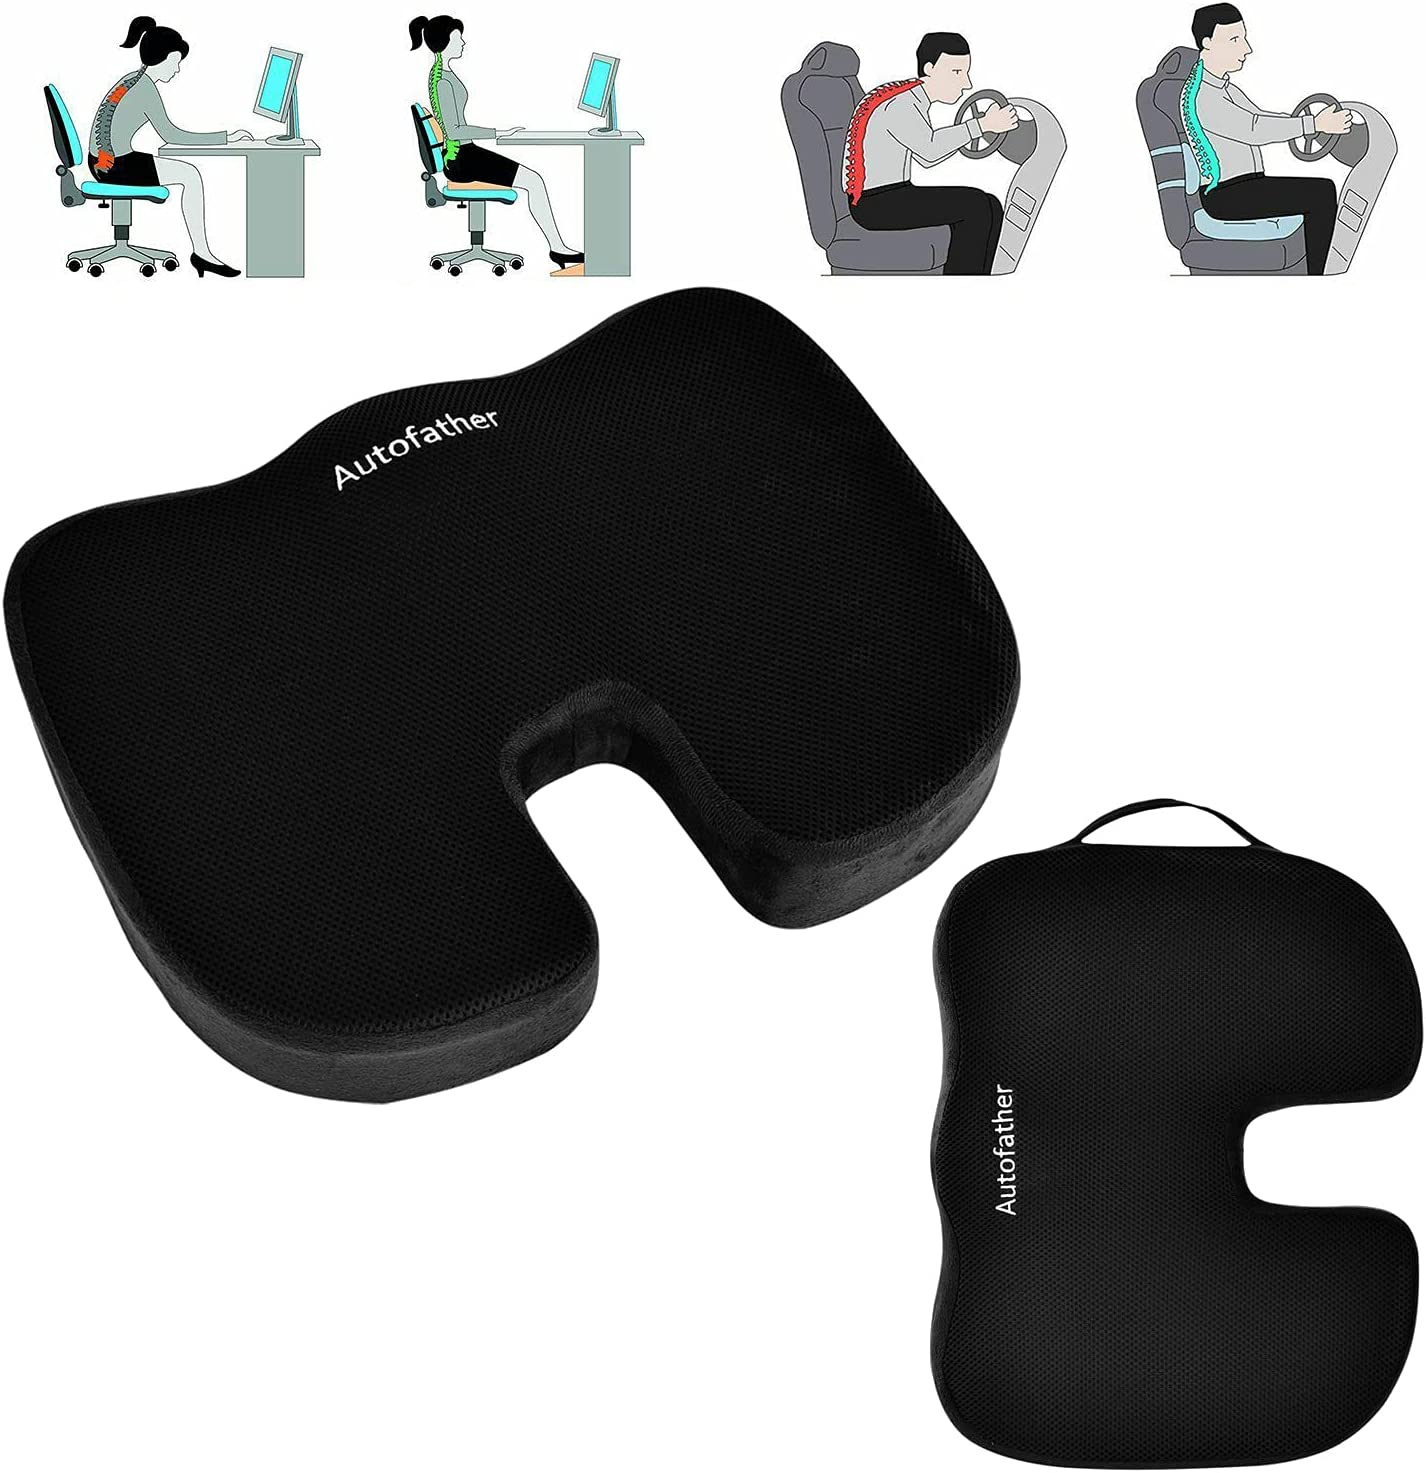 Autofather Seat Cushions 25% OFF – Memory Ranking TOP10 Foam Pad S Pillow for Tailbone